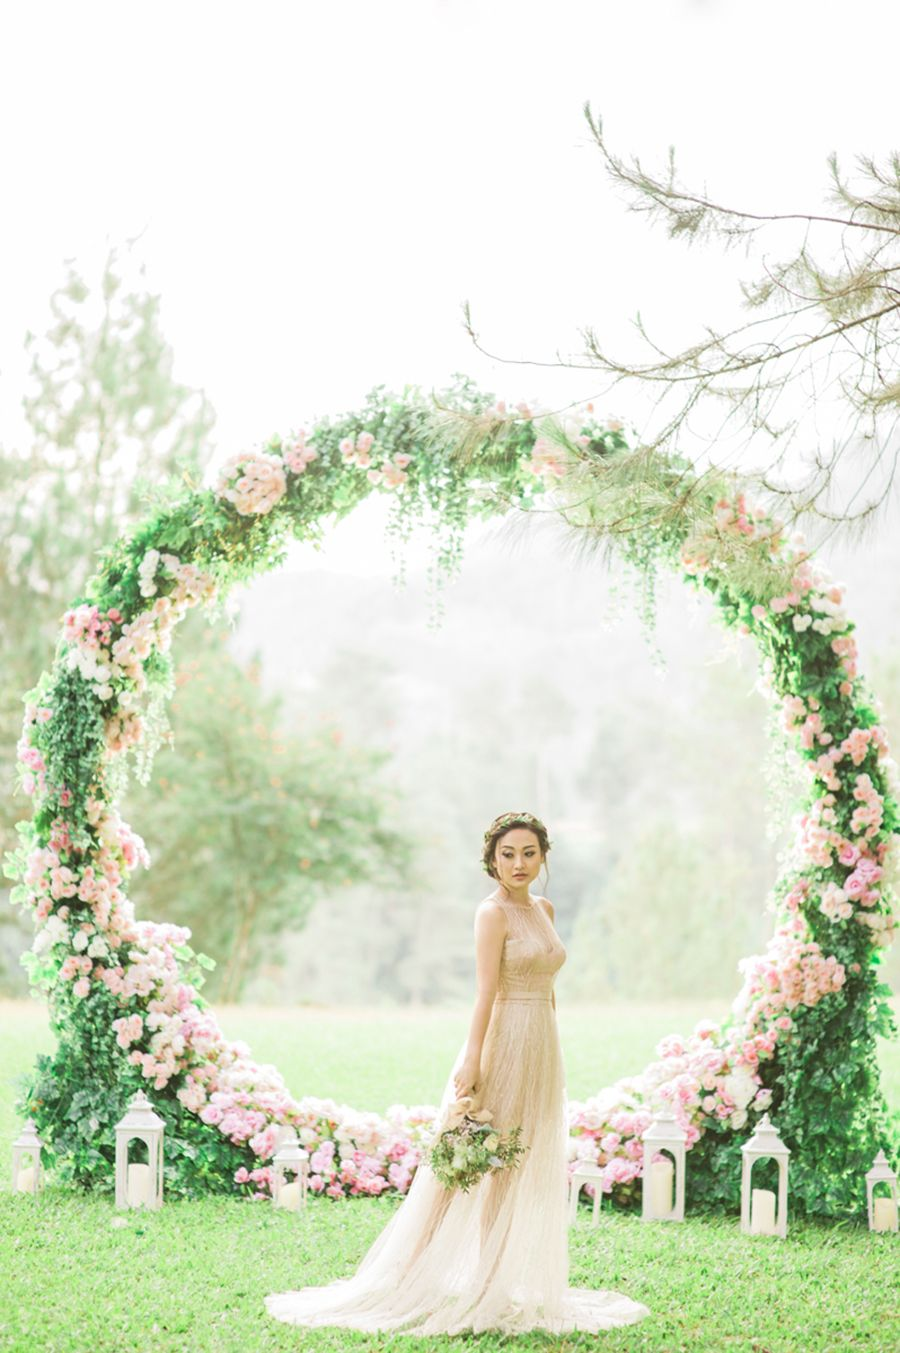 Gerry and Devina's Engagement With a Giant Floral Wreath